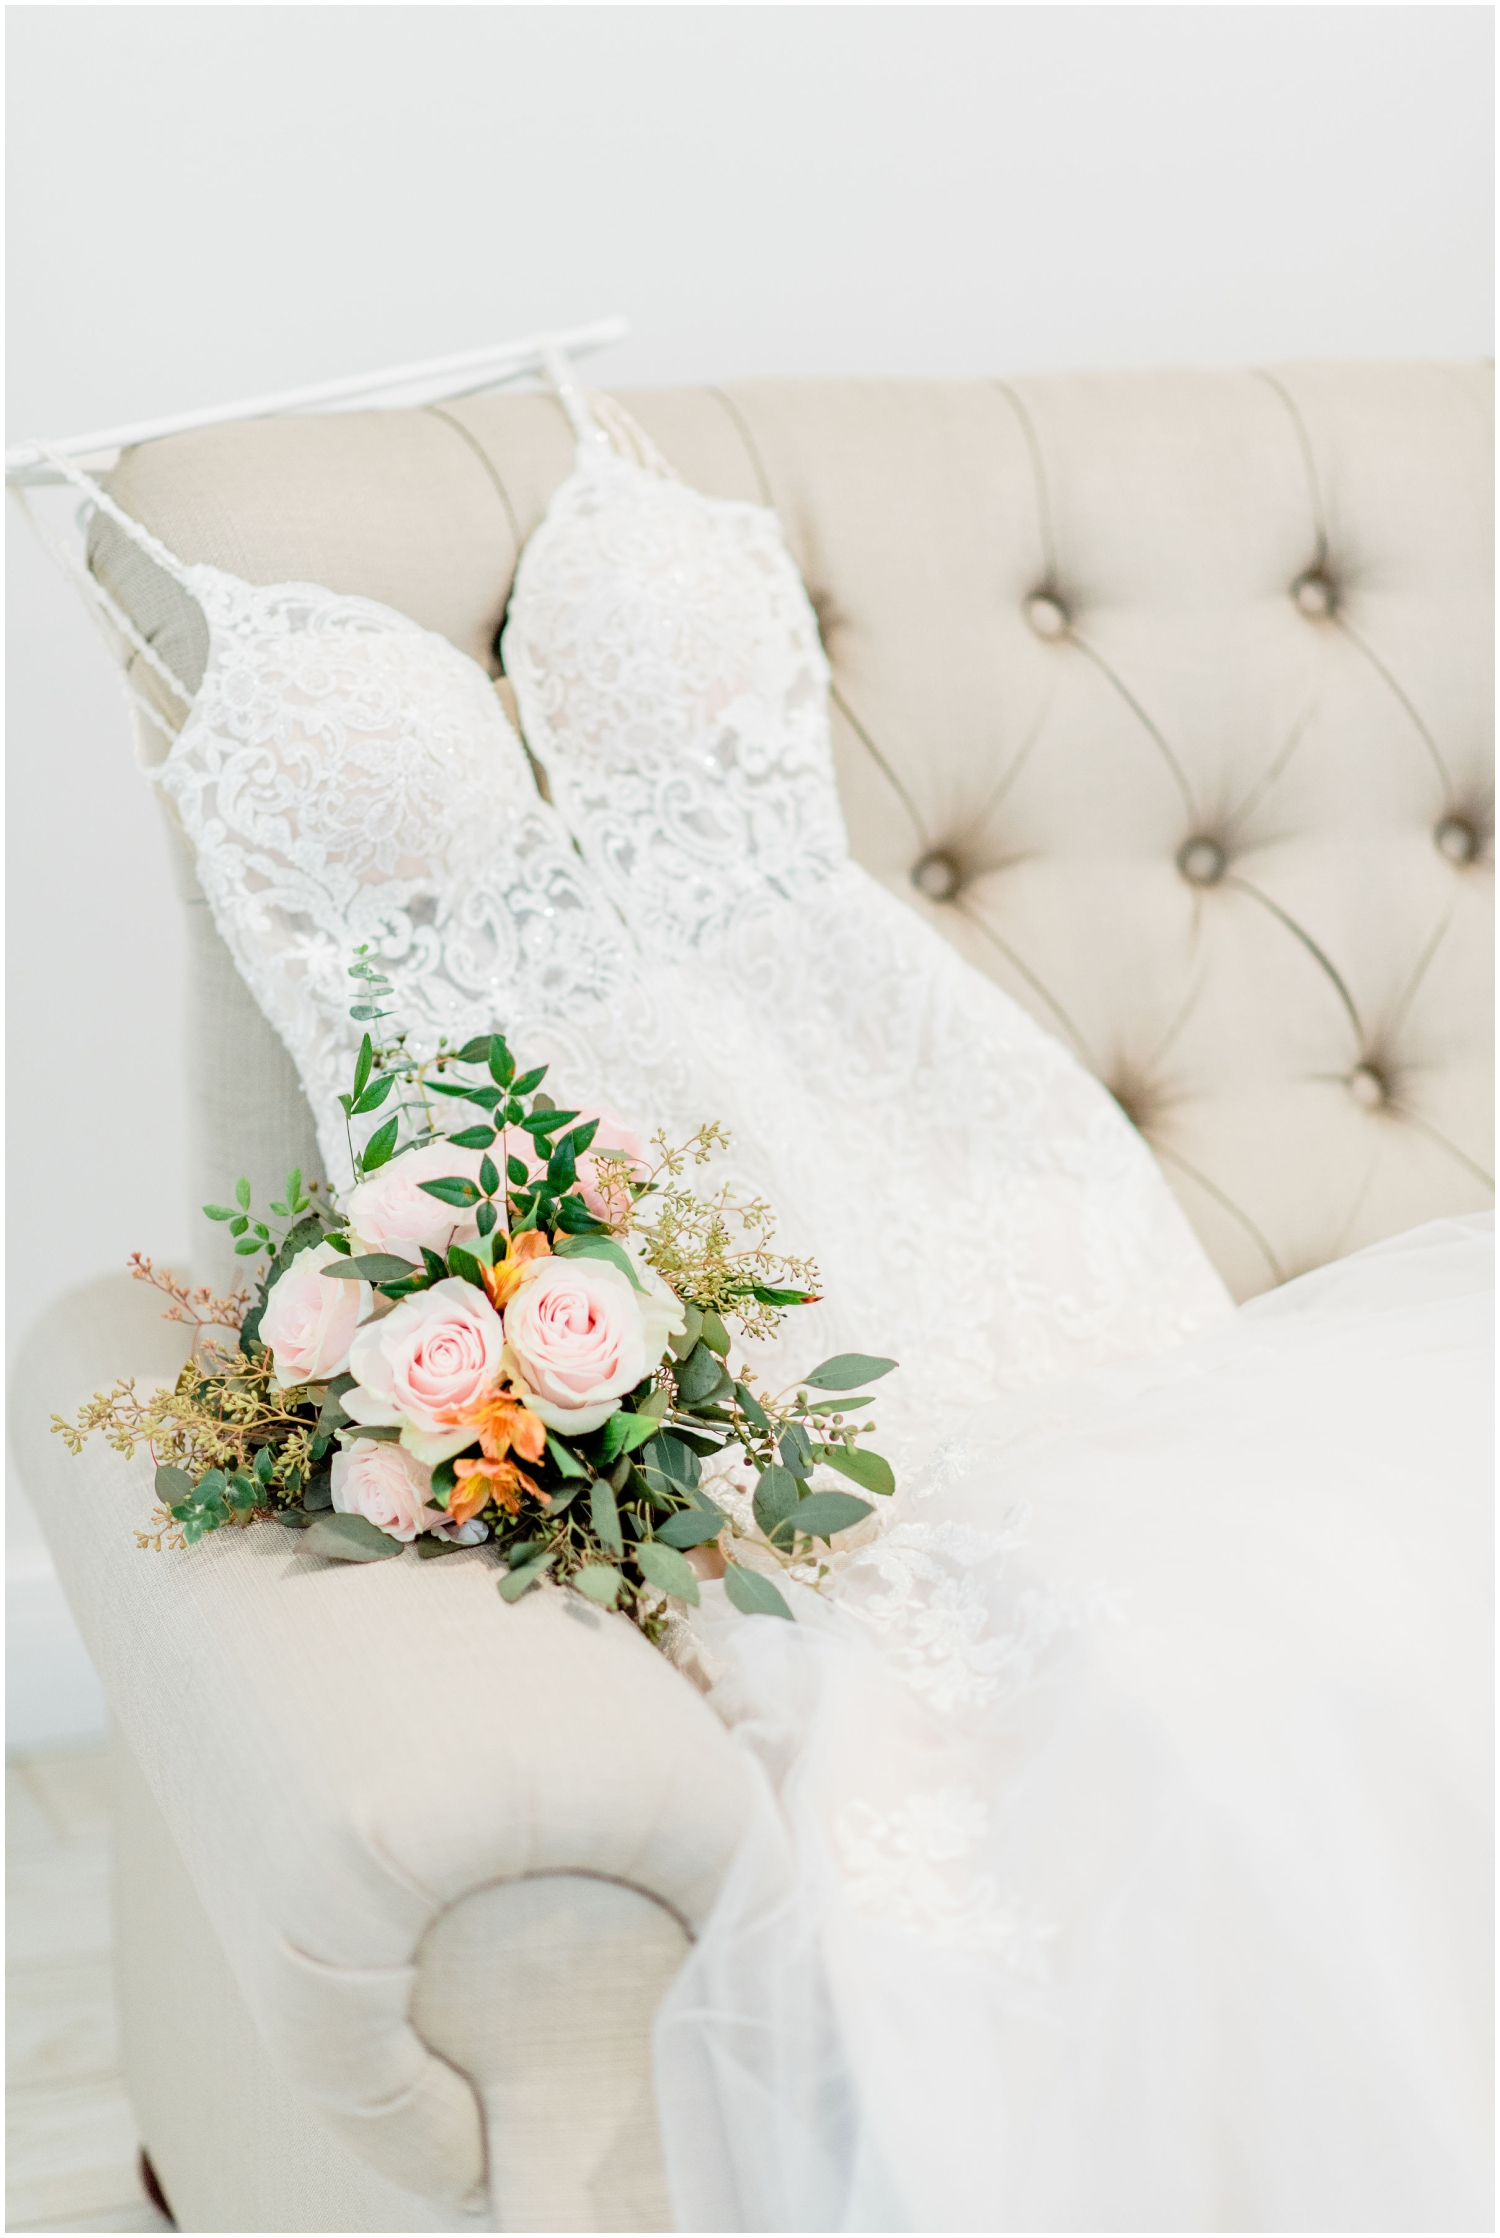 Bride's wedding gown and bouquet